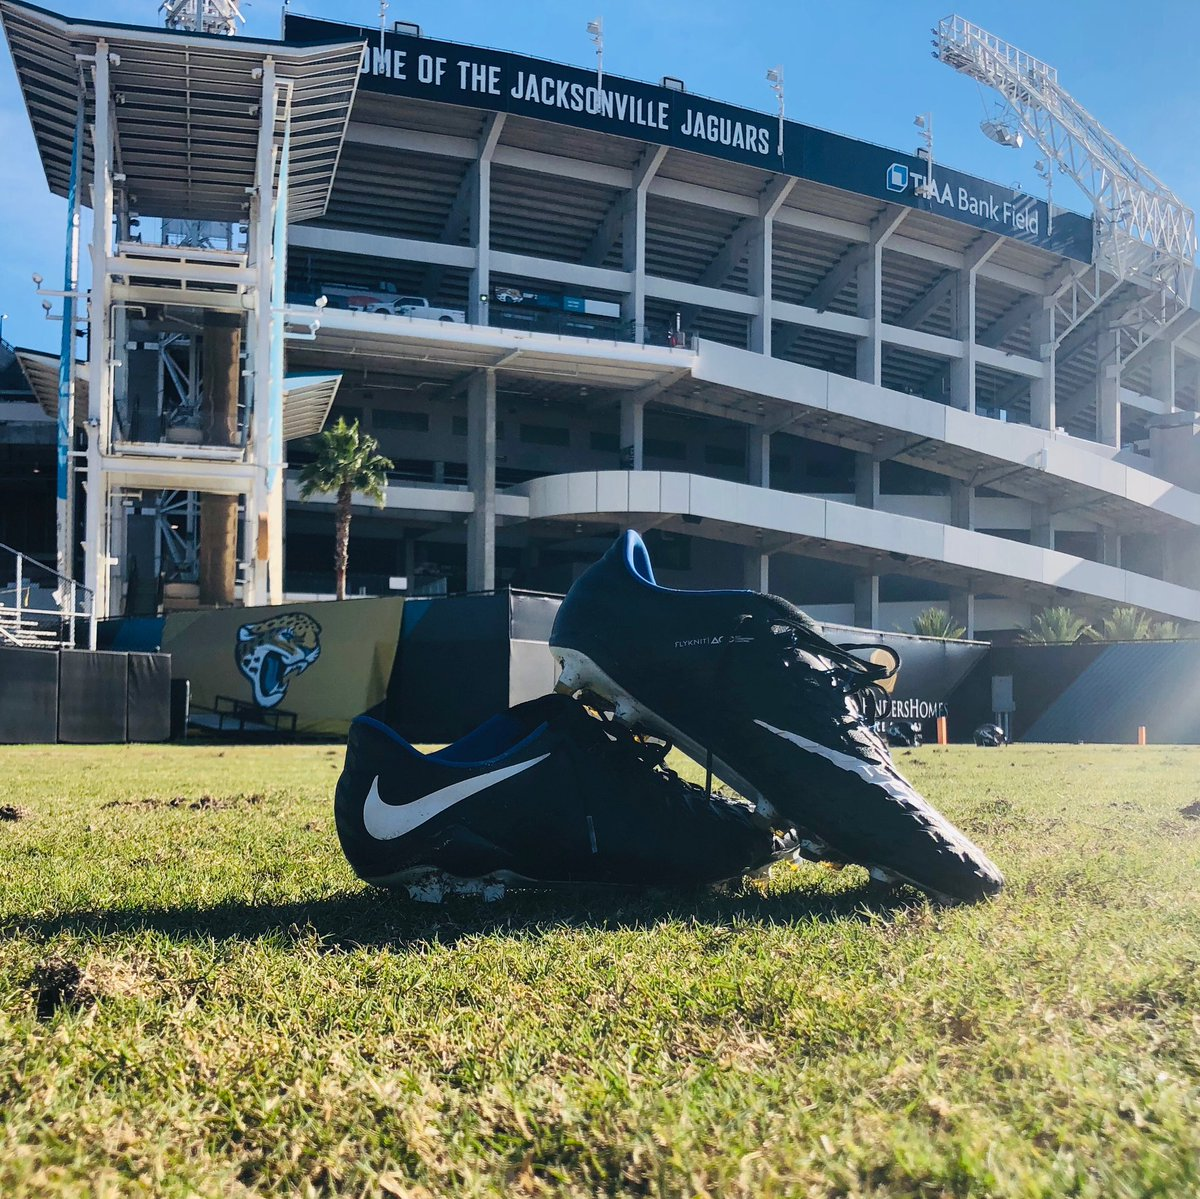 Pro Bowl votes count for DOUBLE today, so I want to give fans a chance to help me out & win the cleats I've worn all season 🤙🏼  RT for your chance to win!   (Or if you'd rather hear one of my famous dad jokes, that's available as an alternate prize)  #ProBowlVote + Josh Lambo